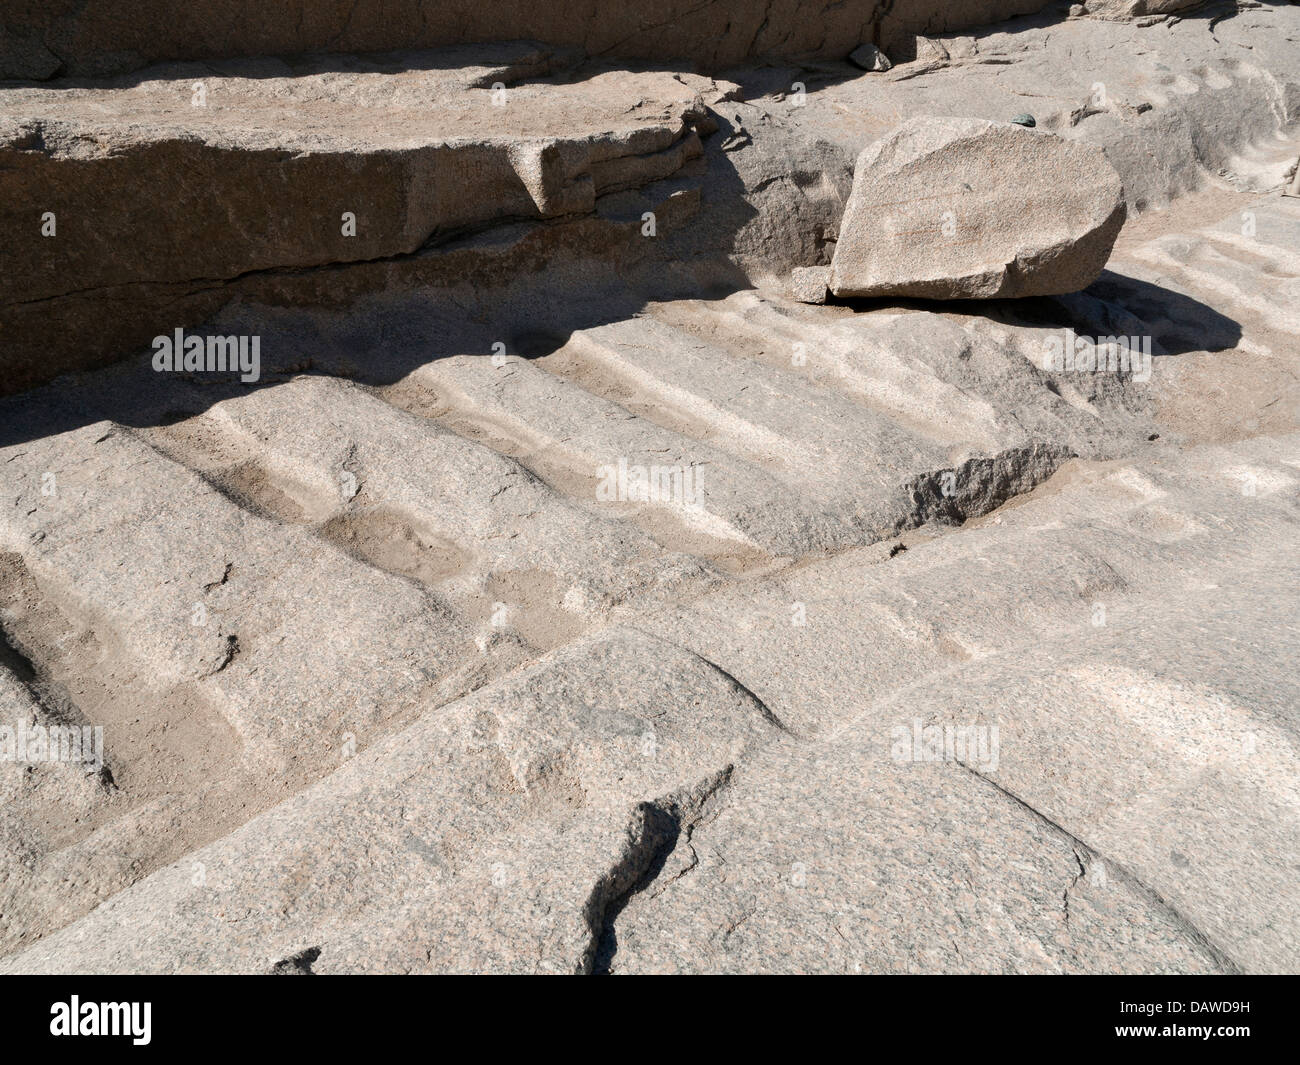 Quarry markings in The Unfinished Obelisk Open Air Museum, Northern Quarries, Aswan, Egypt - Stock Image